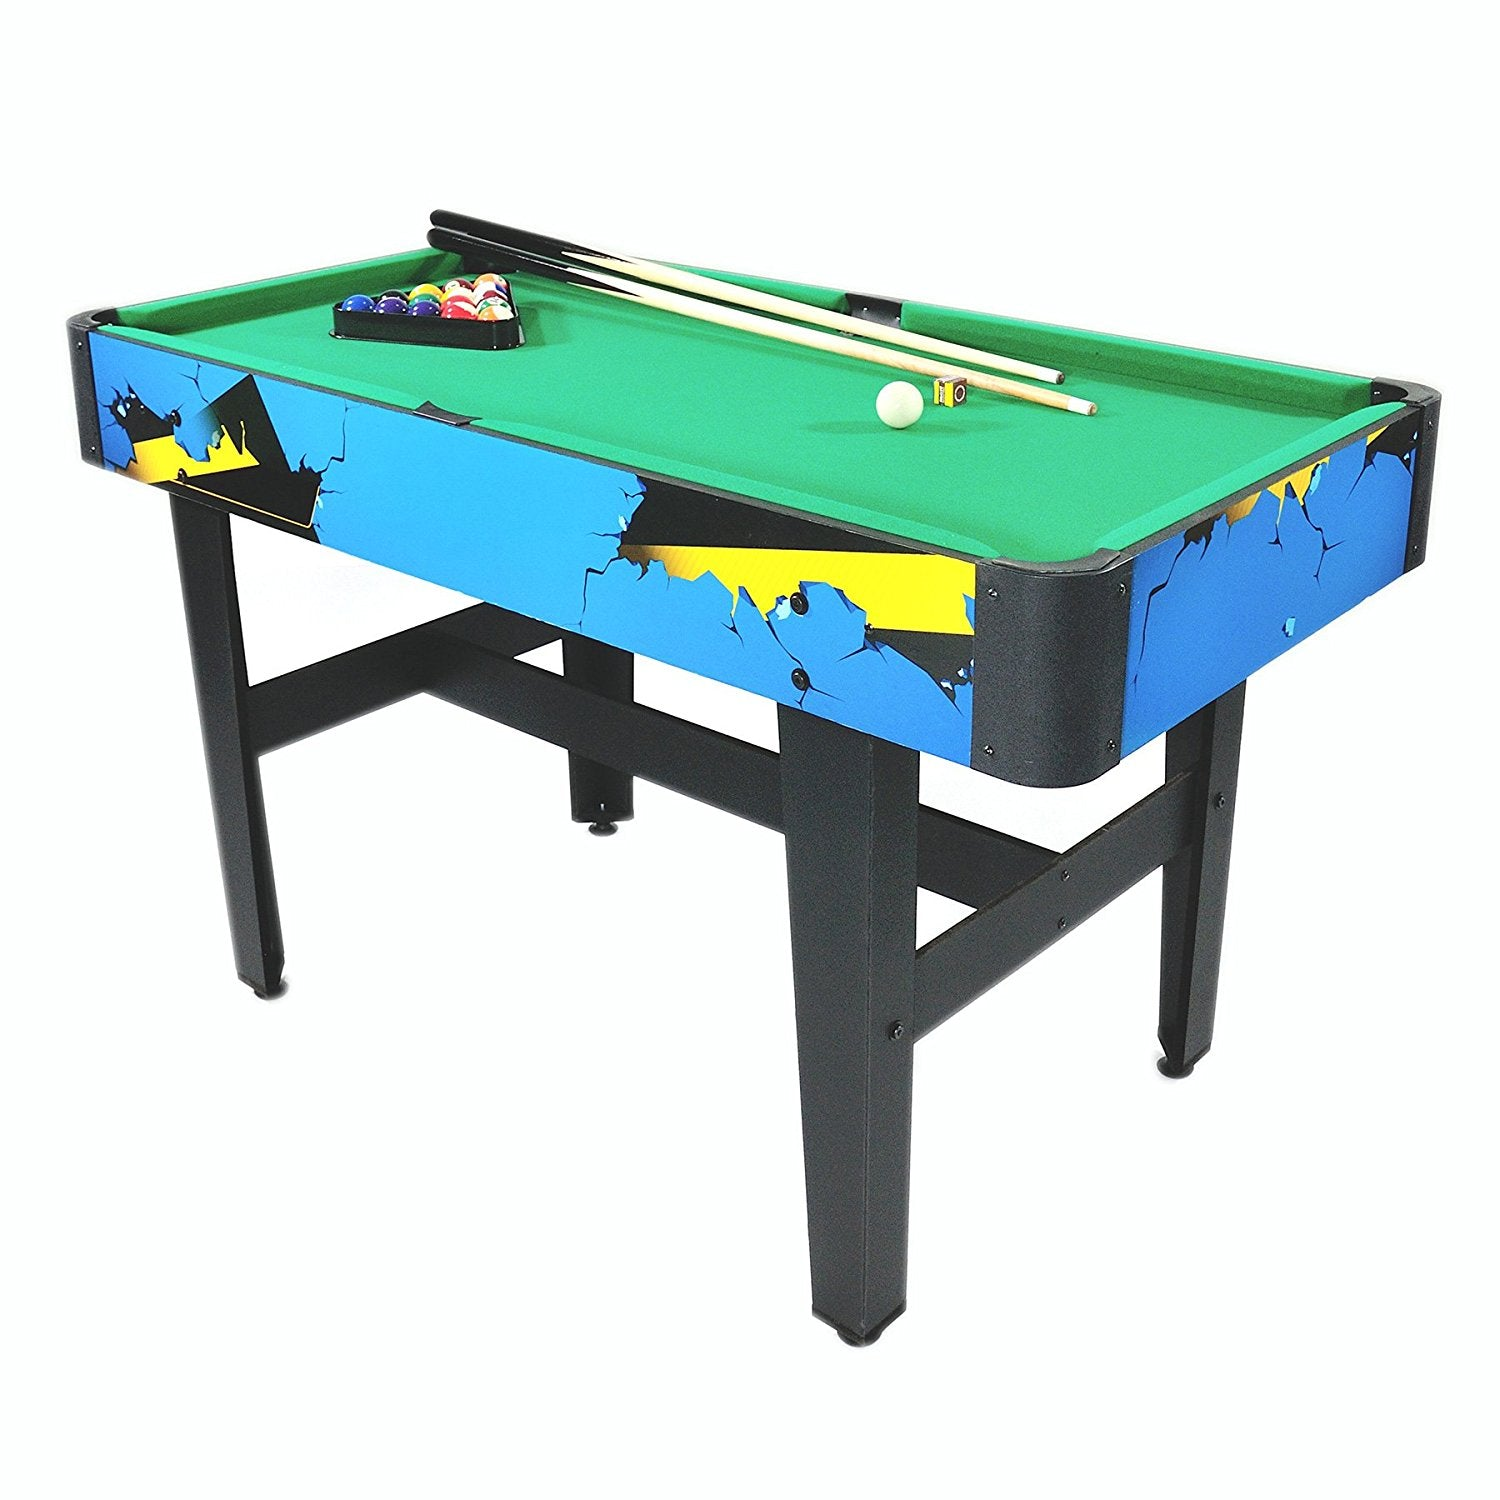 4 In 1 Combo Game Table, Hockey Foosball Table ...